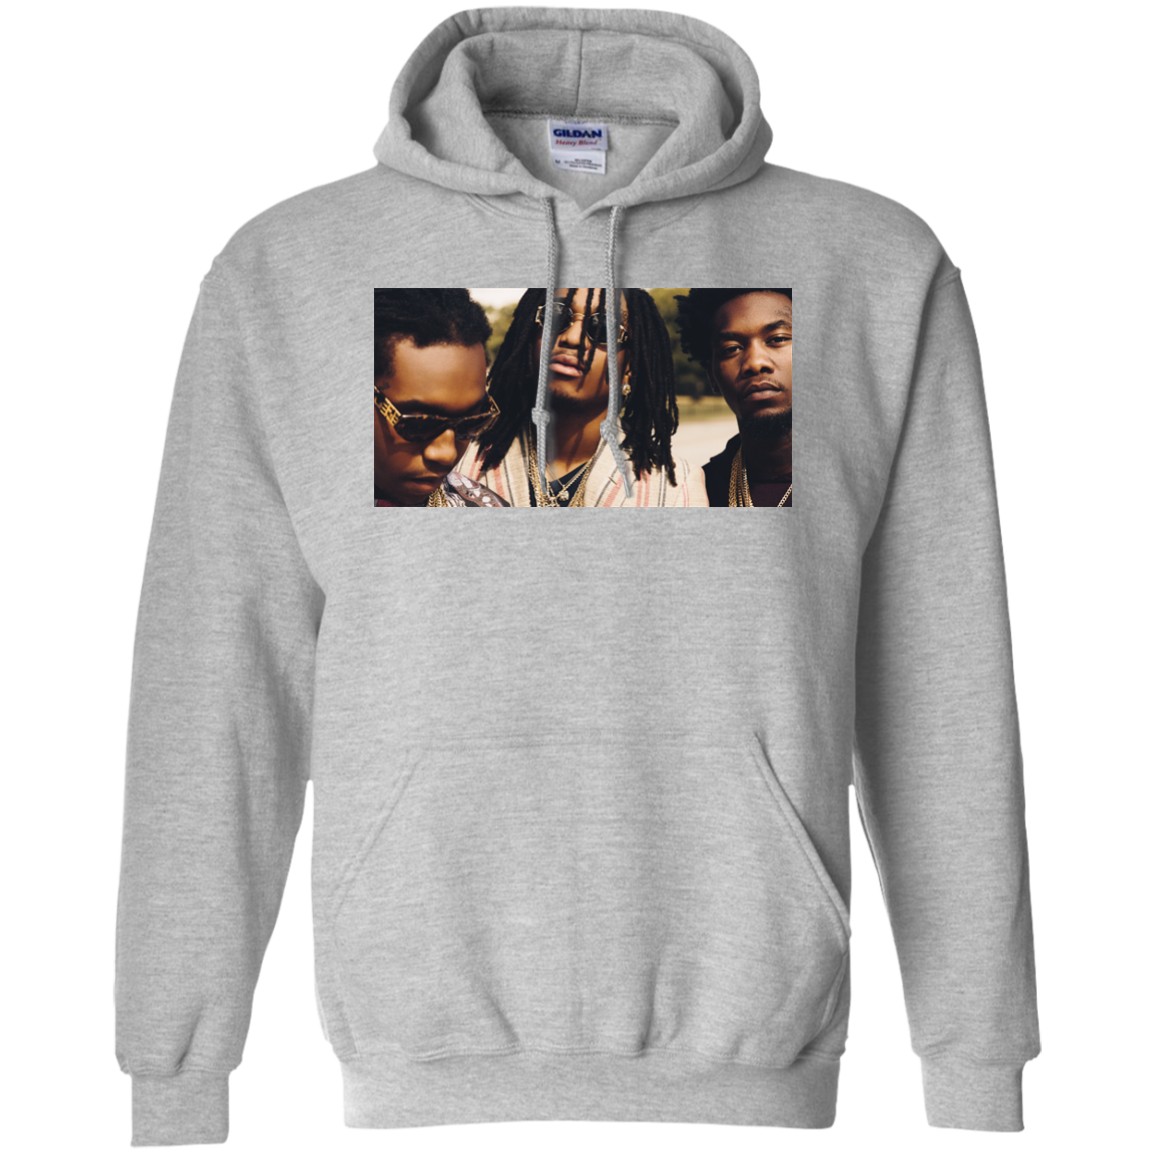 Migos t shirt migos cotton unisex 39 s t shirt hoodies for T shirt by migos